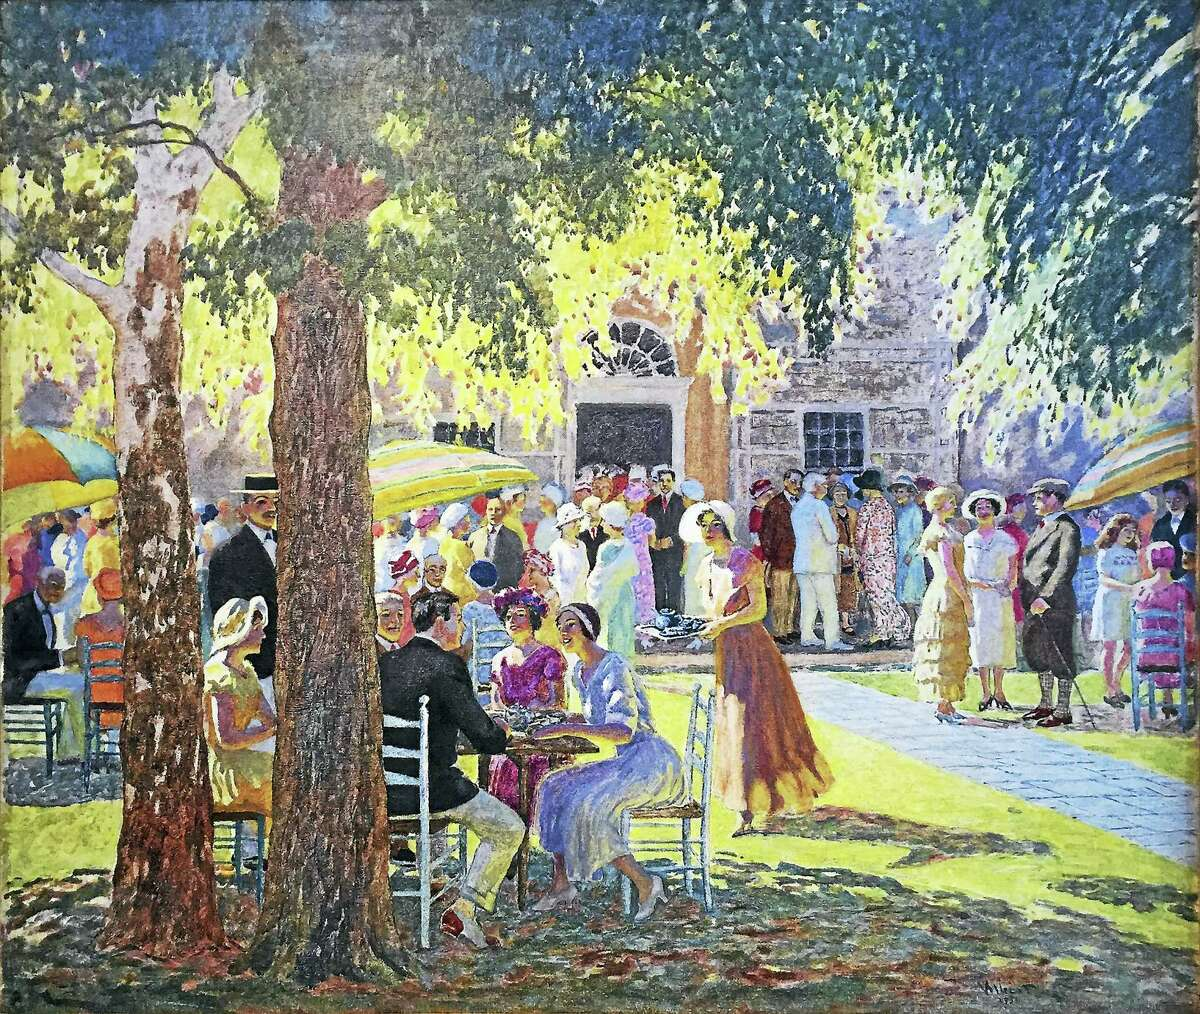 Contributed photoTea Day 1931: The Art Community at Old Lyme, on display at the Mattatuck Museum in Waterbury.